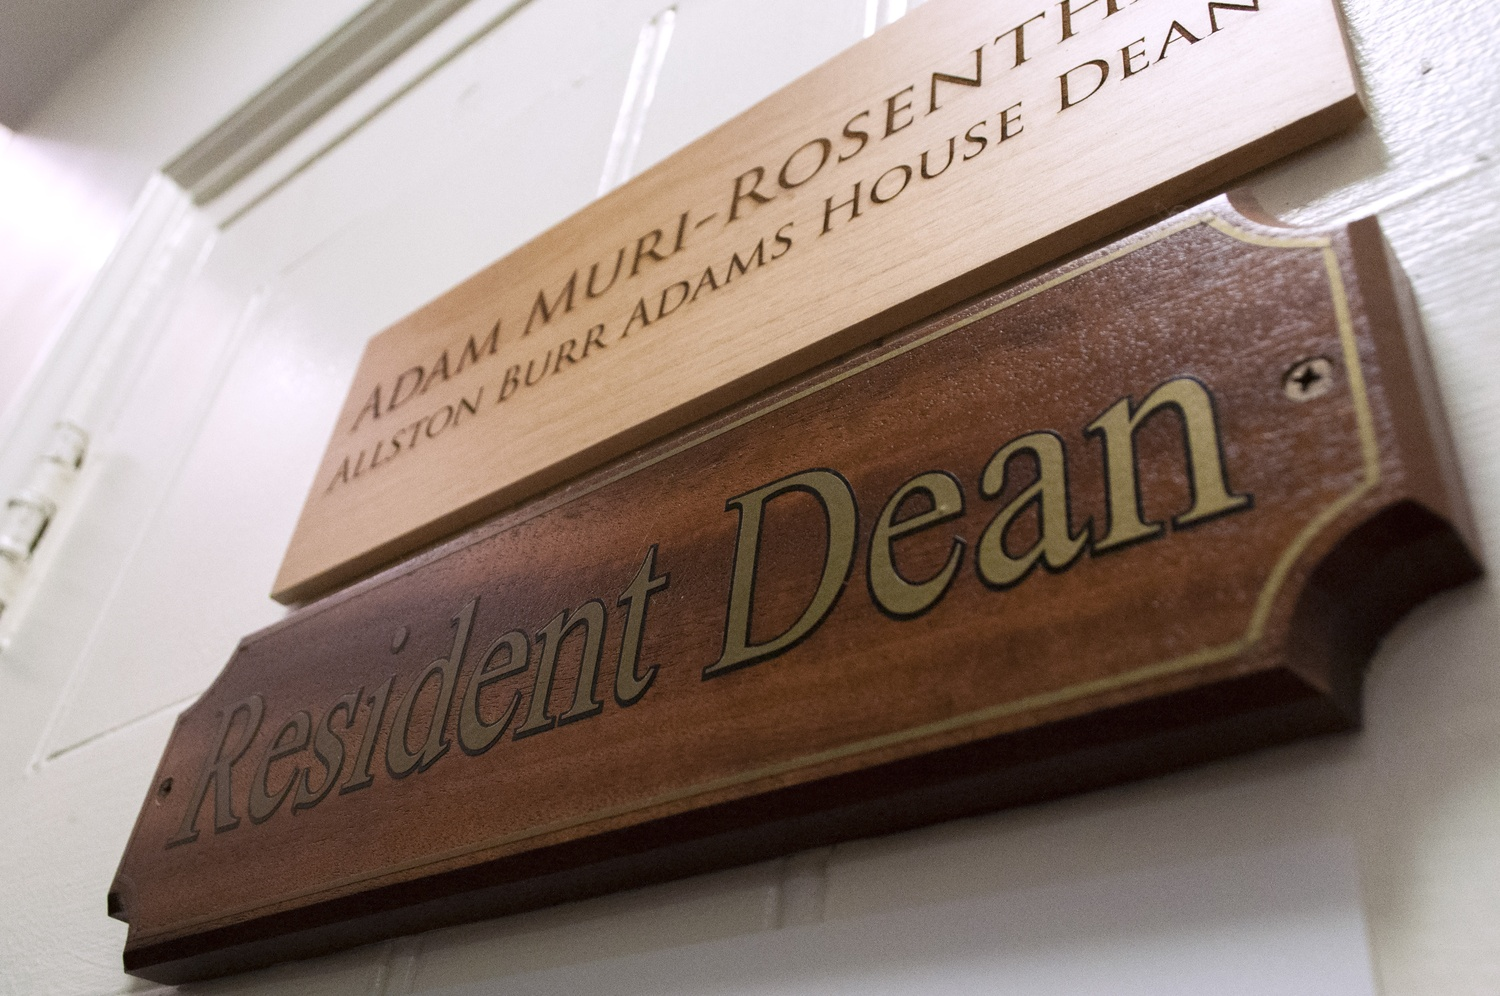 For the fourth time in a little over a decade, the College has made a change to the official title of House resident deans.